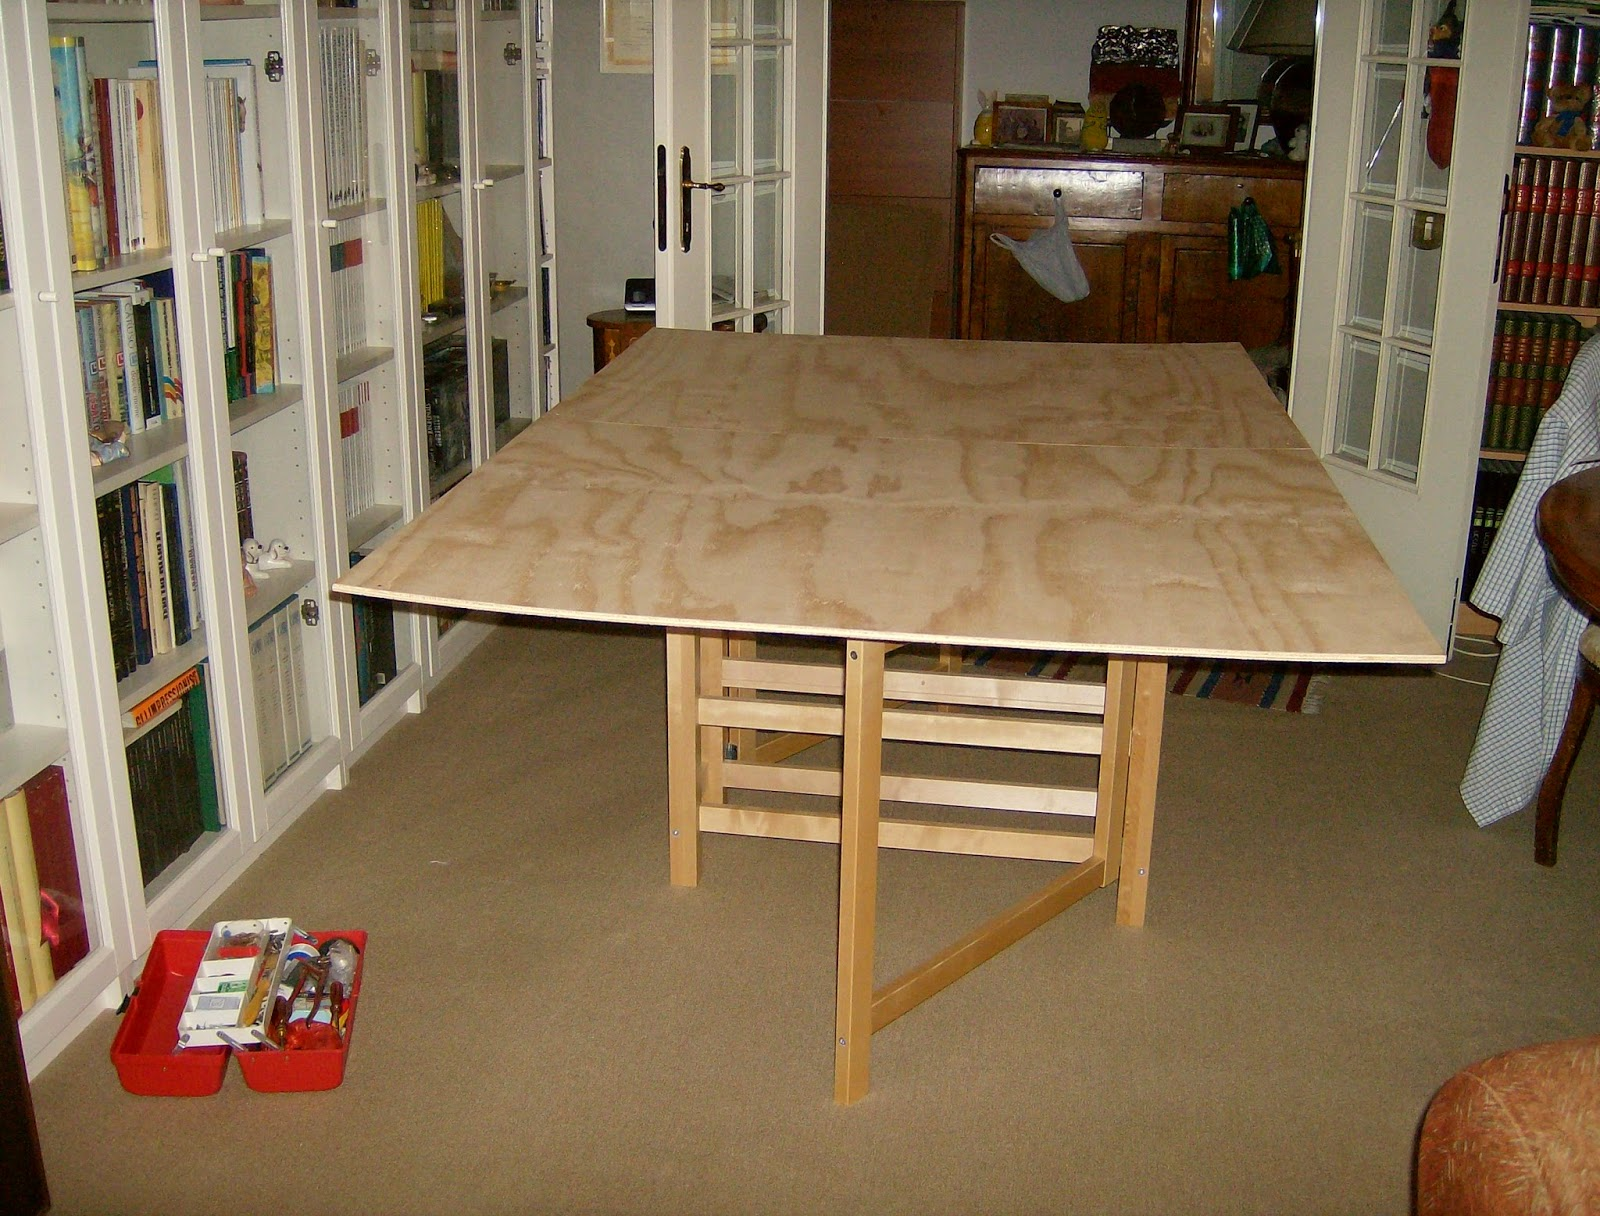 Ikea Folding Table With Drawers ~ wargame superimposed on the folding table Ikea (the central drawers